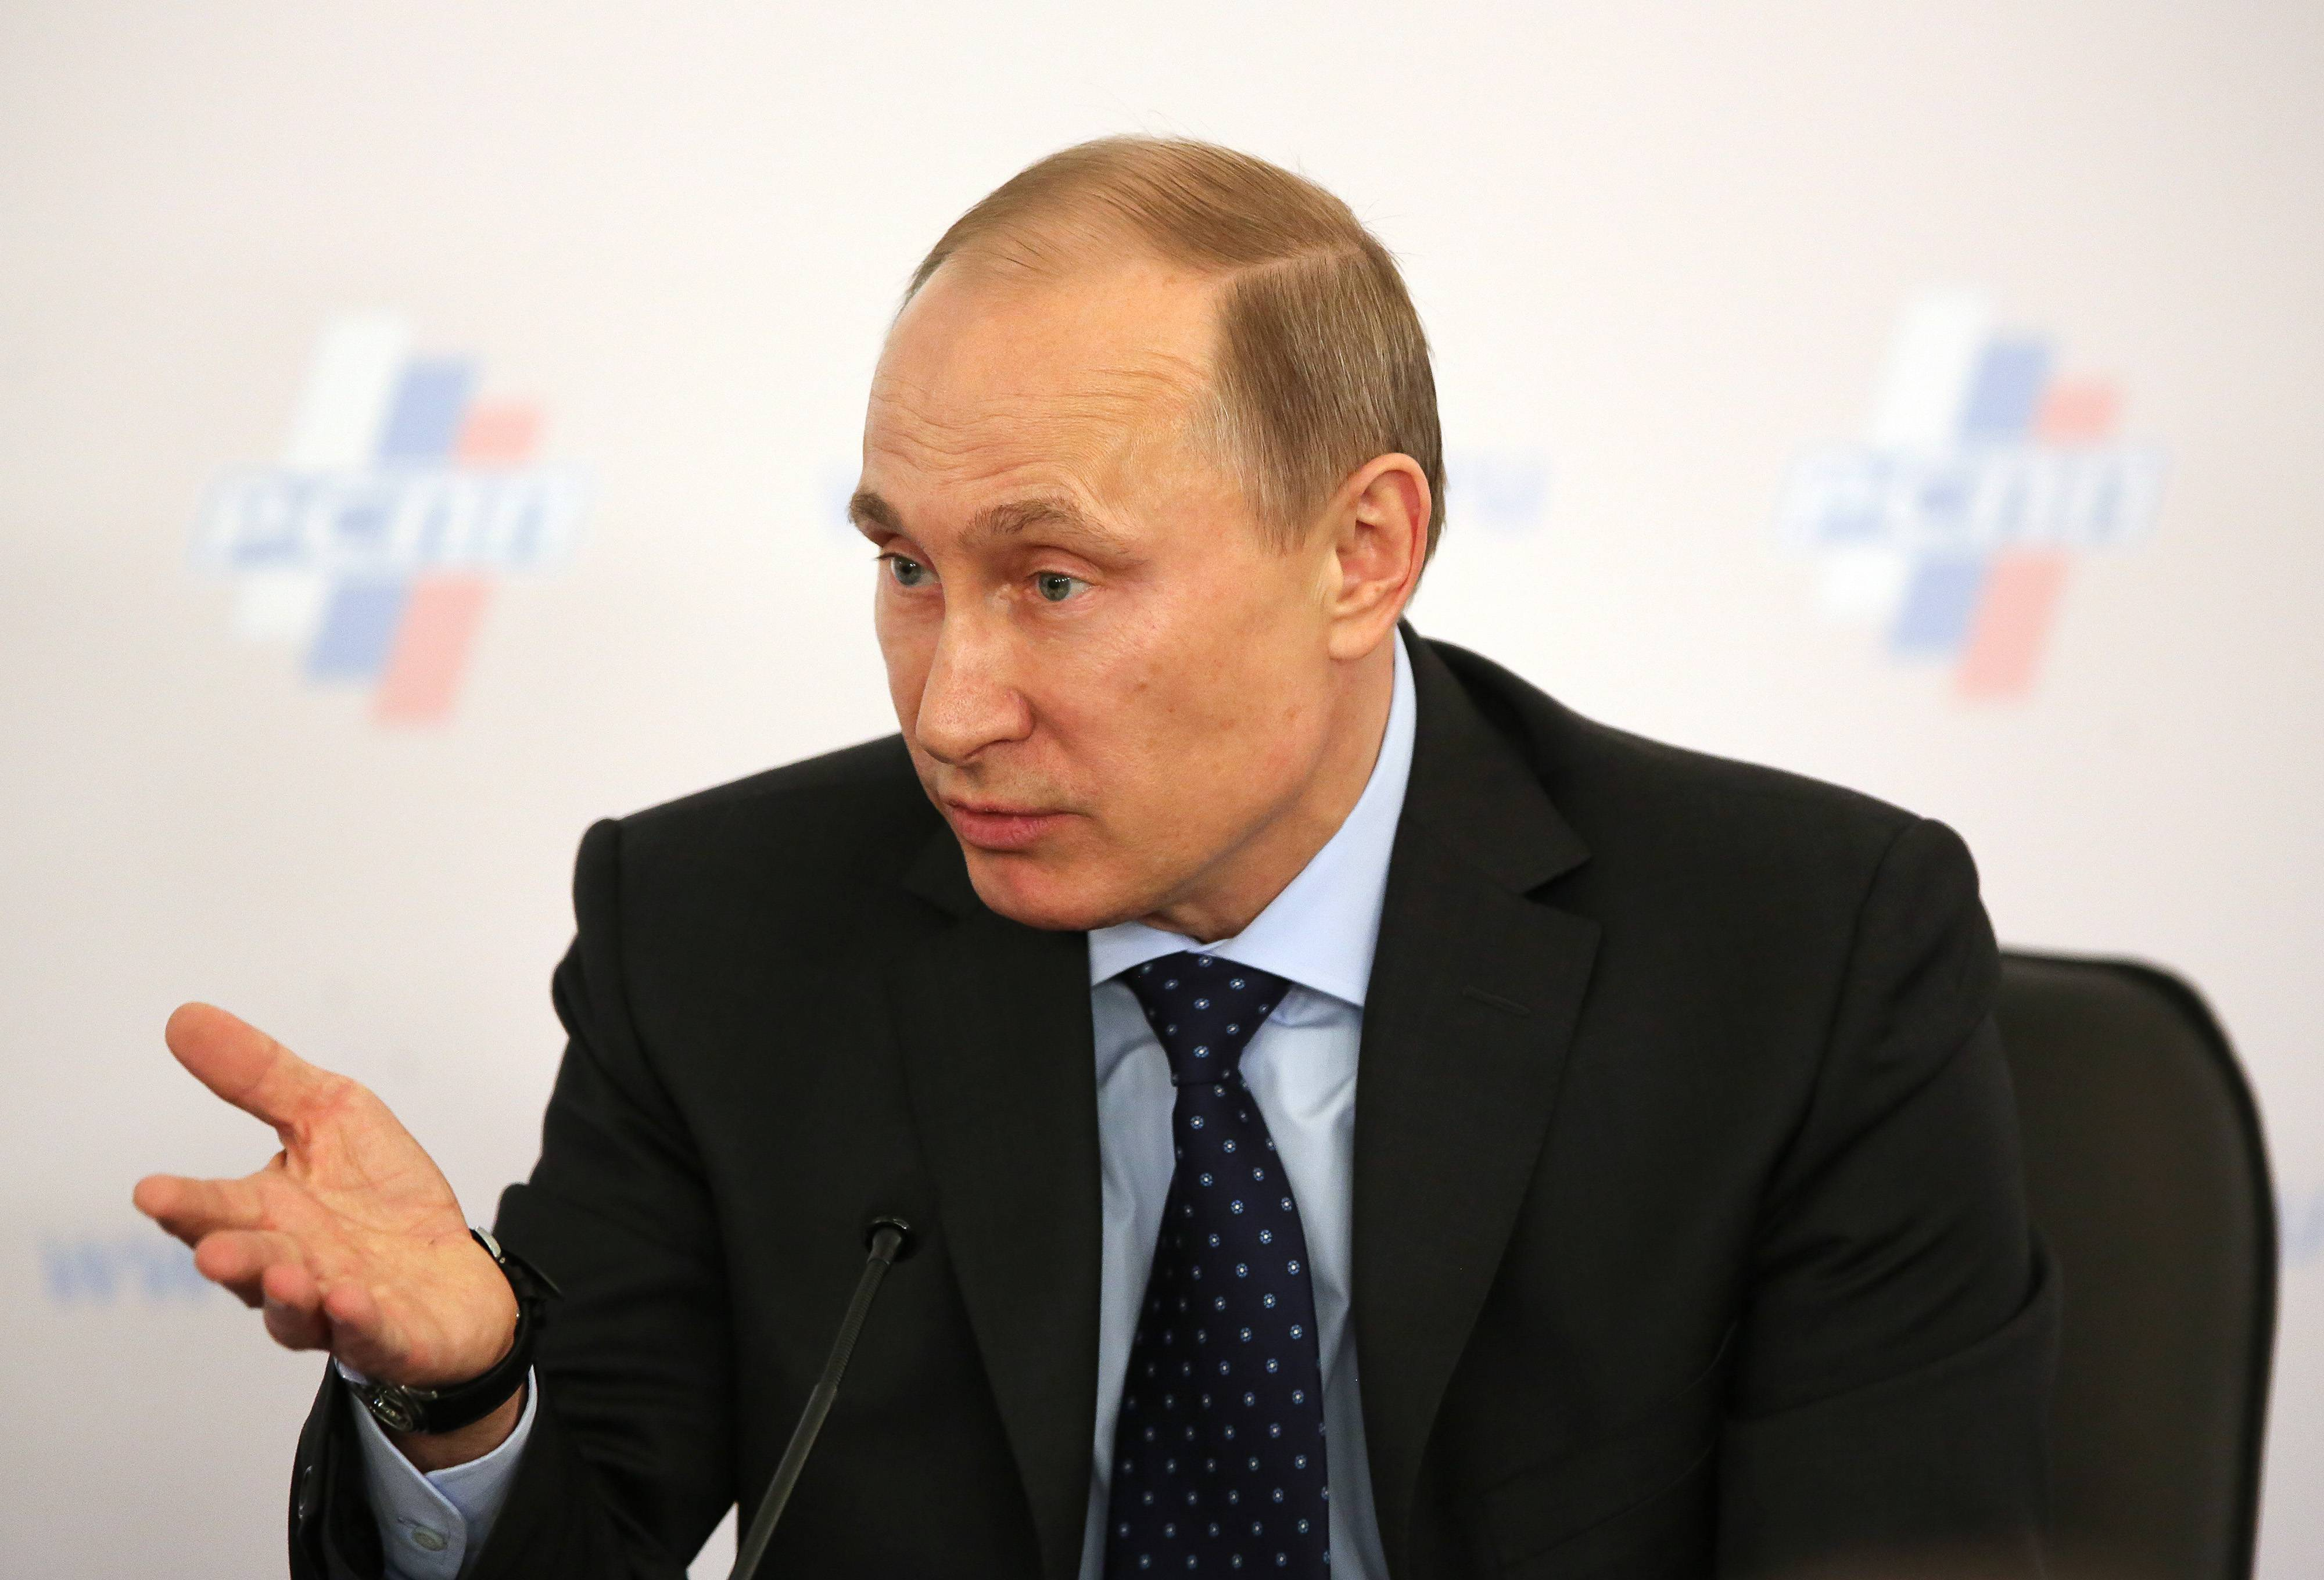 Russian President Vladimir Putin addresses business leaders in Moscow on Thursday. Putin, facing the weakest economic outlook in four years and forecasts of surging capital outflows, is defying Western threats of sanctions and pressing ahead with plans to absorb Crimea, a predominantly Russian-speaking region that houses the Black Sea Fleet.